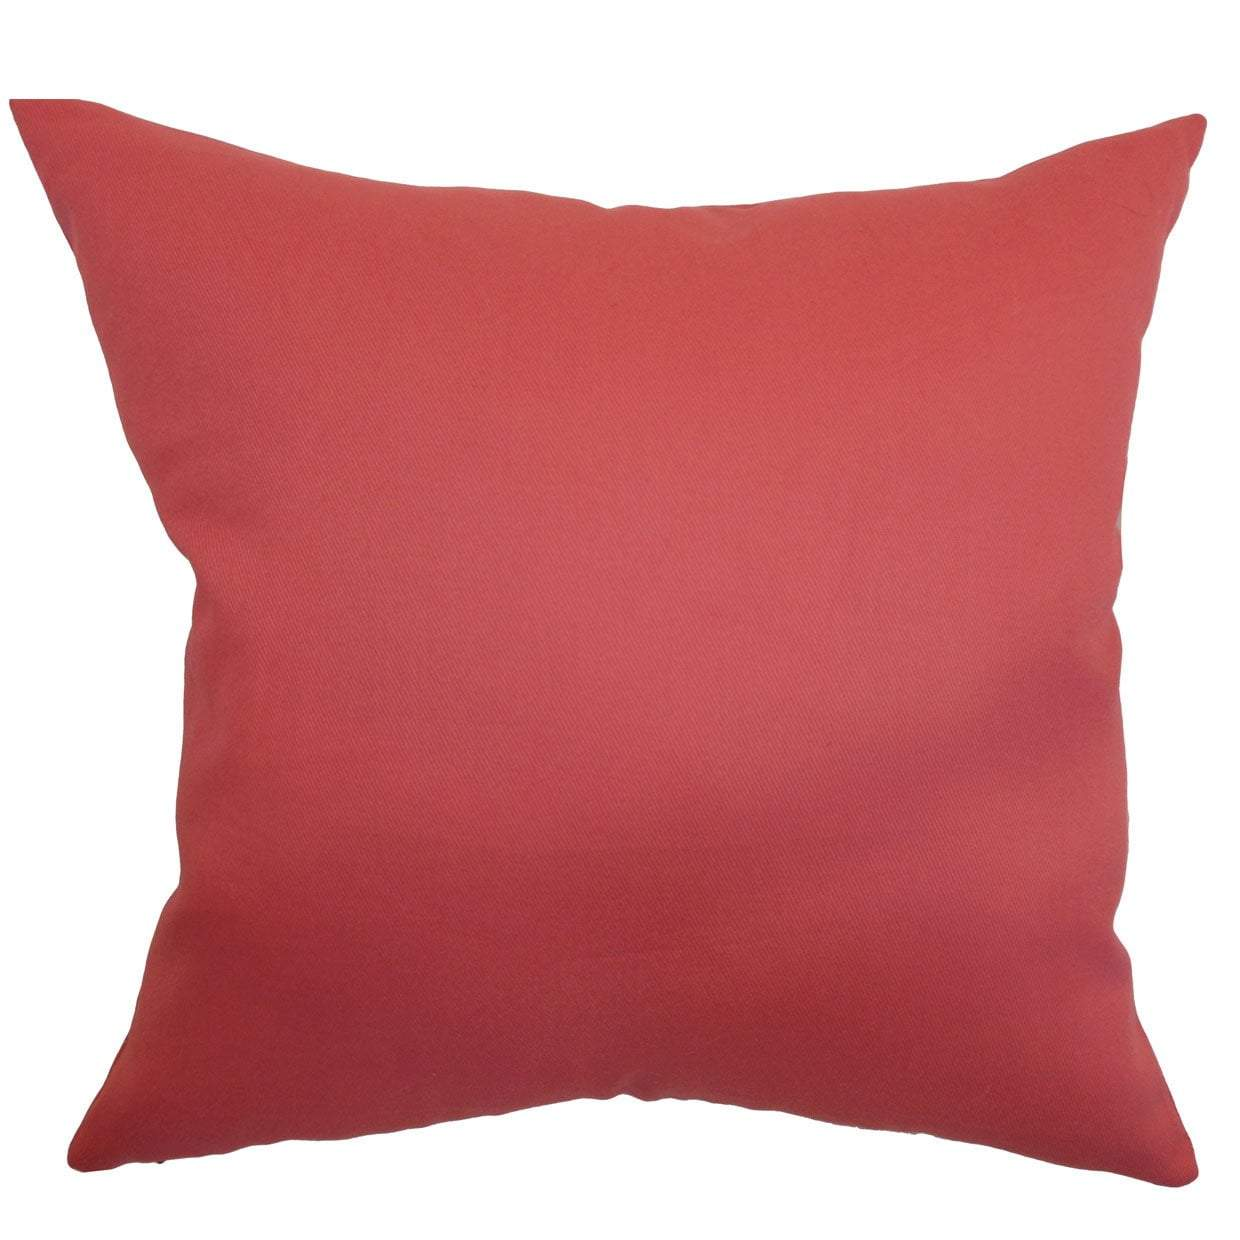 Trevino Throw Pillow Cover